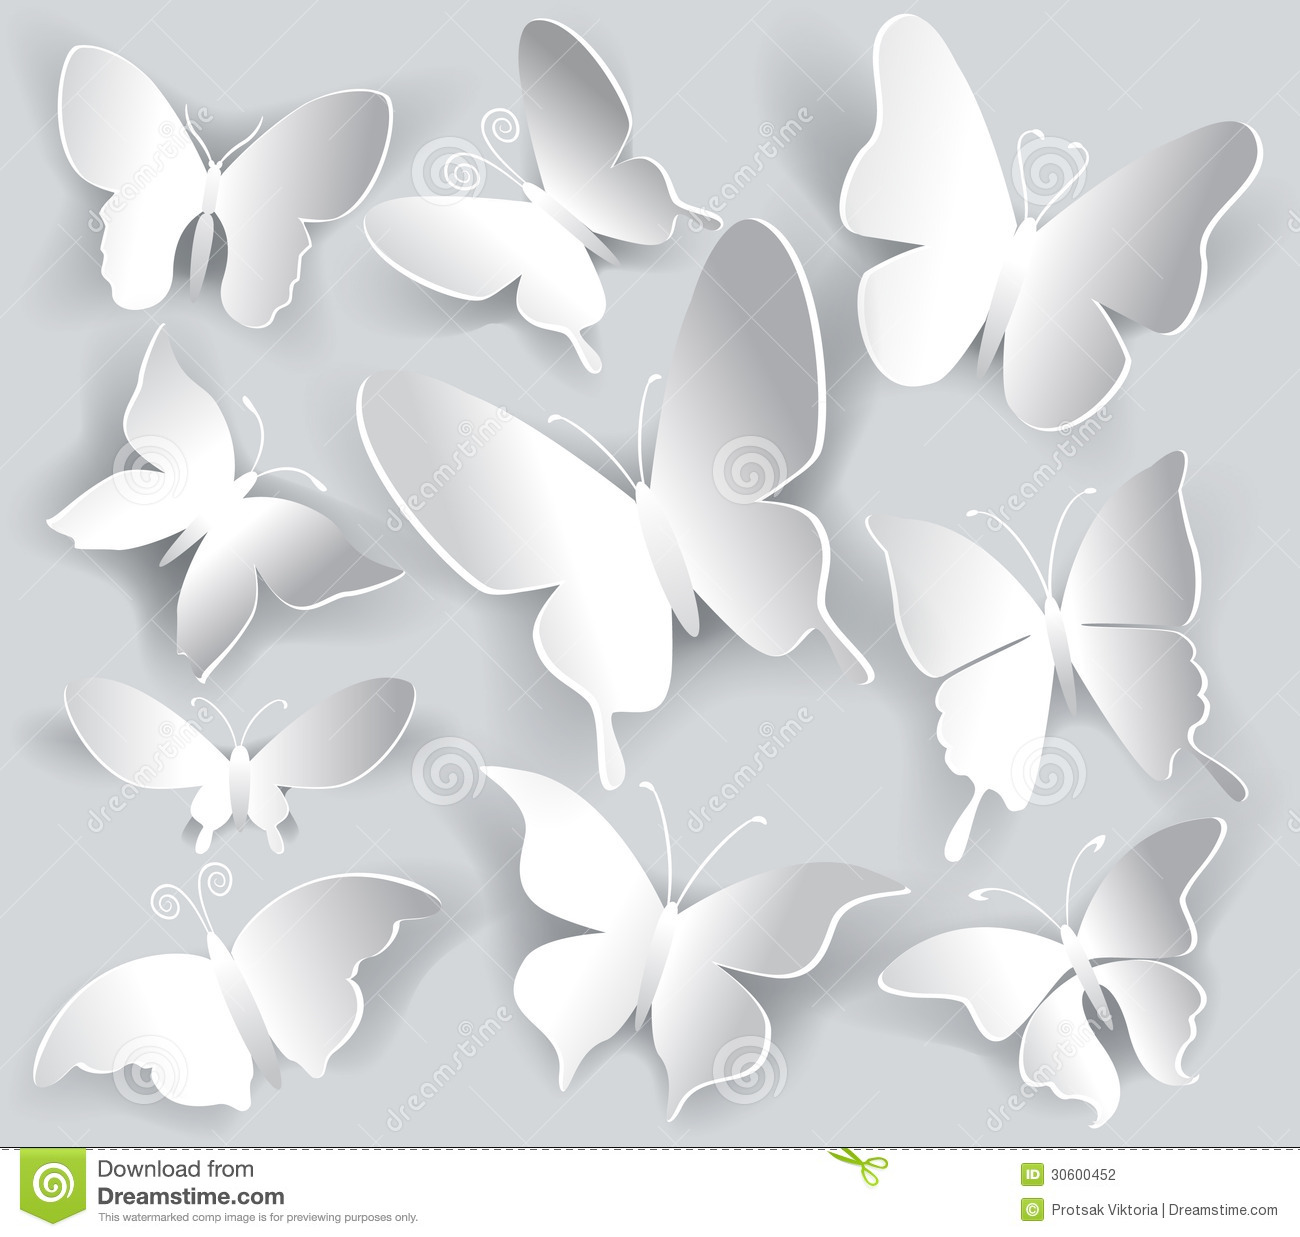 Set of paper butterfly stock photography image 30600452 for White paper butterflies